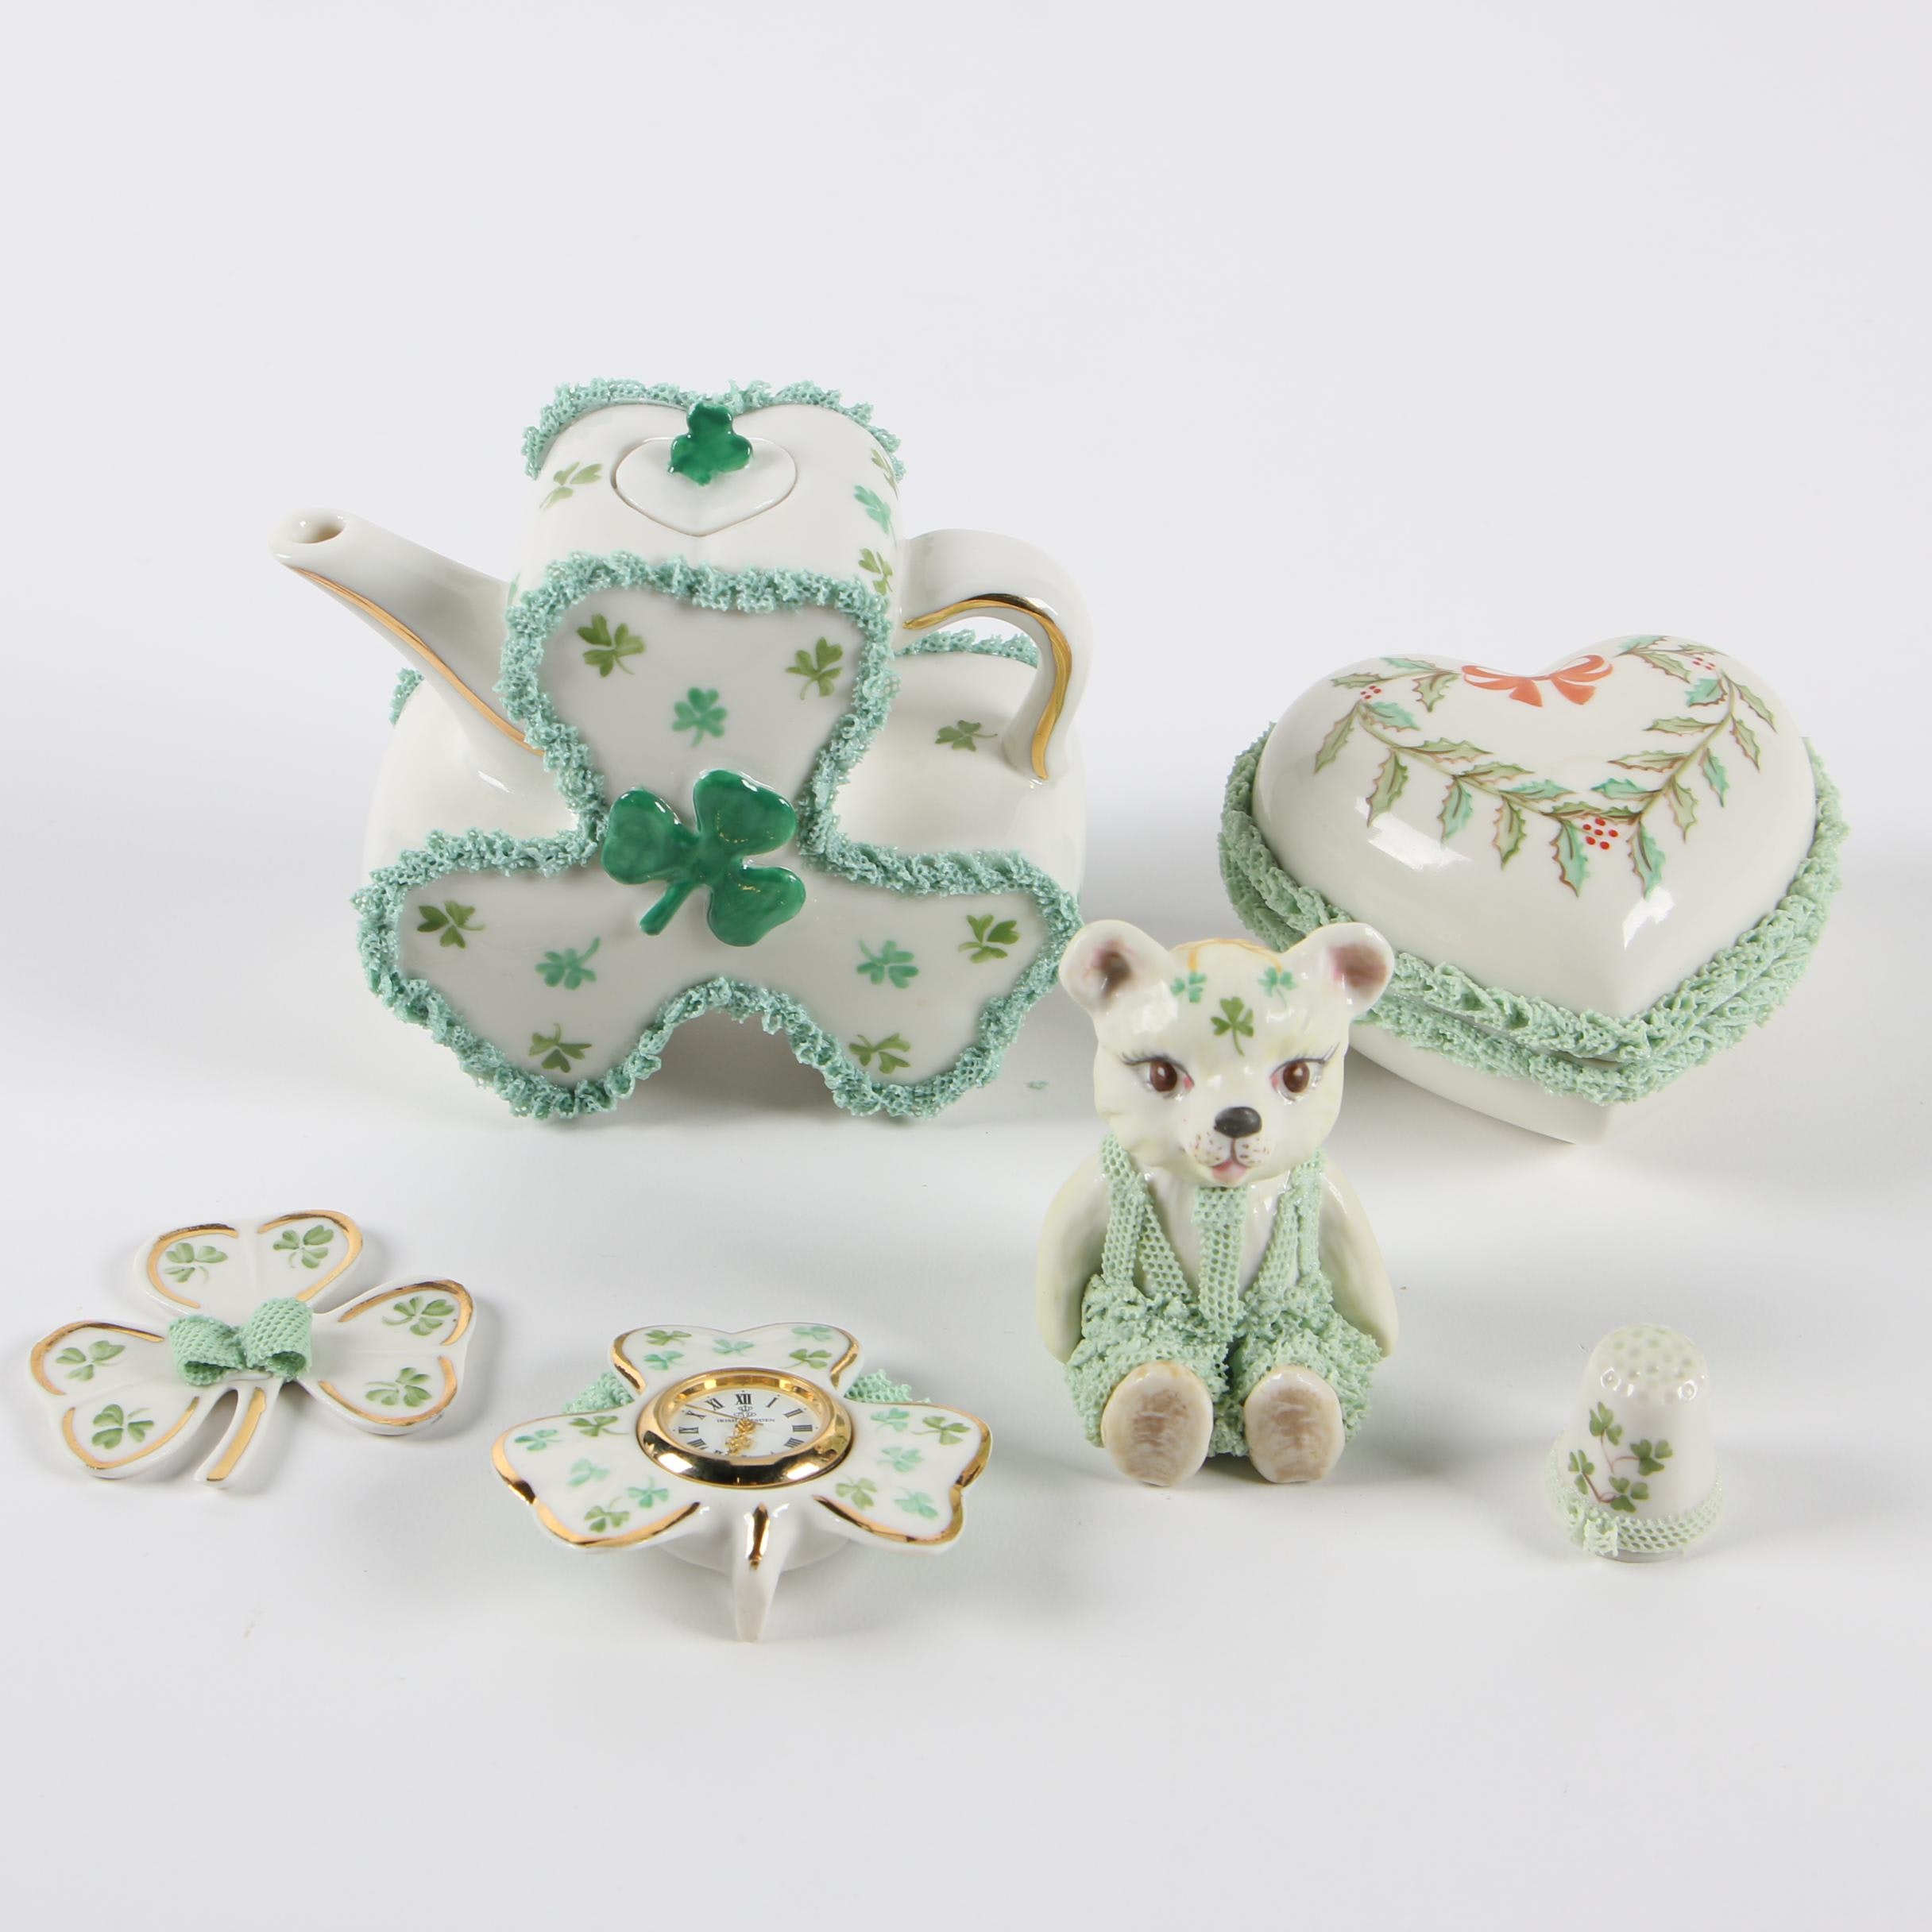 Irish Dresden Porcelain Teapot, Trinket Trays, and Figurine